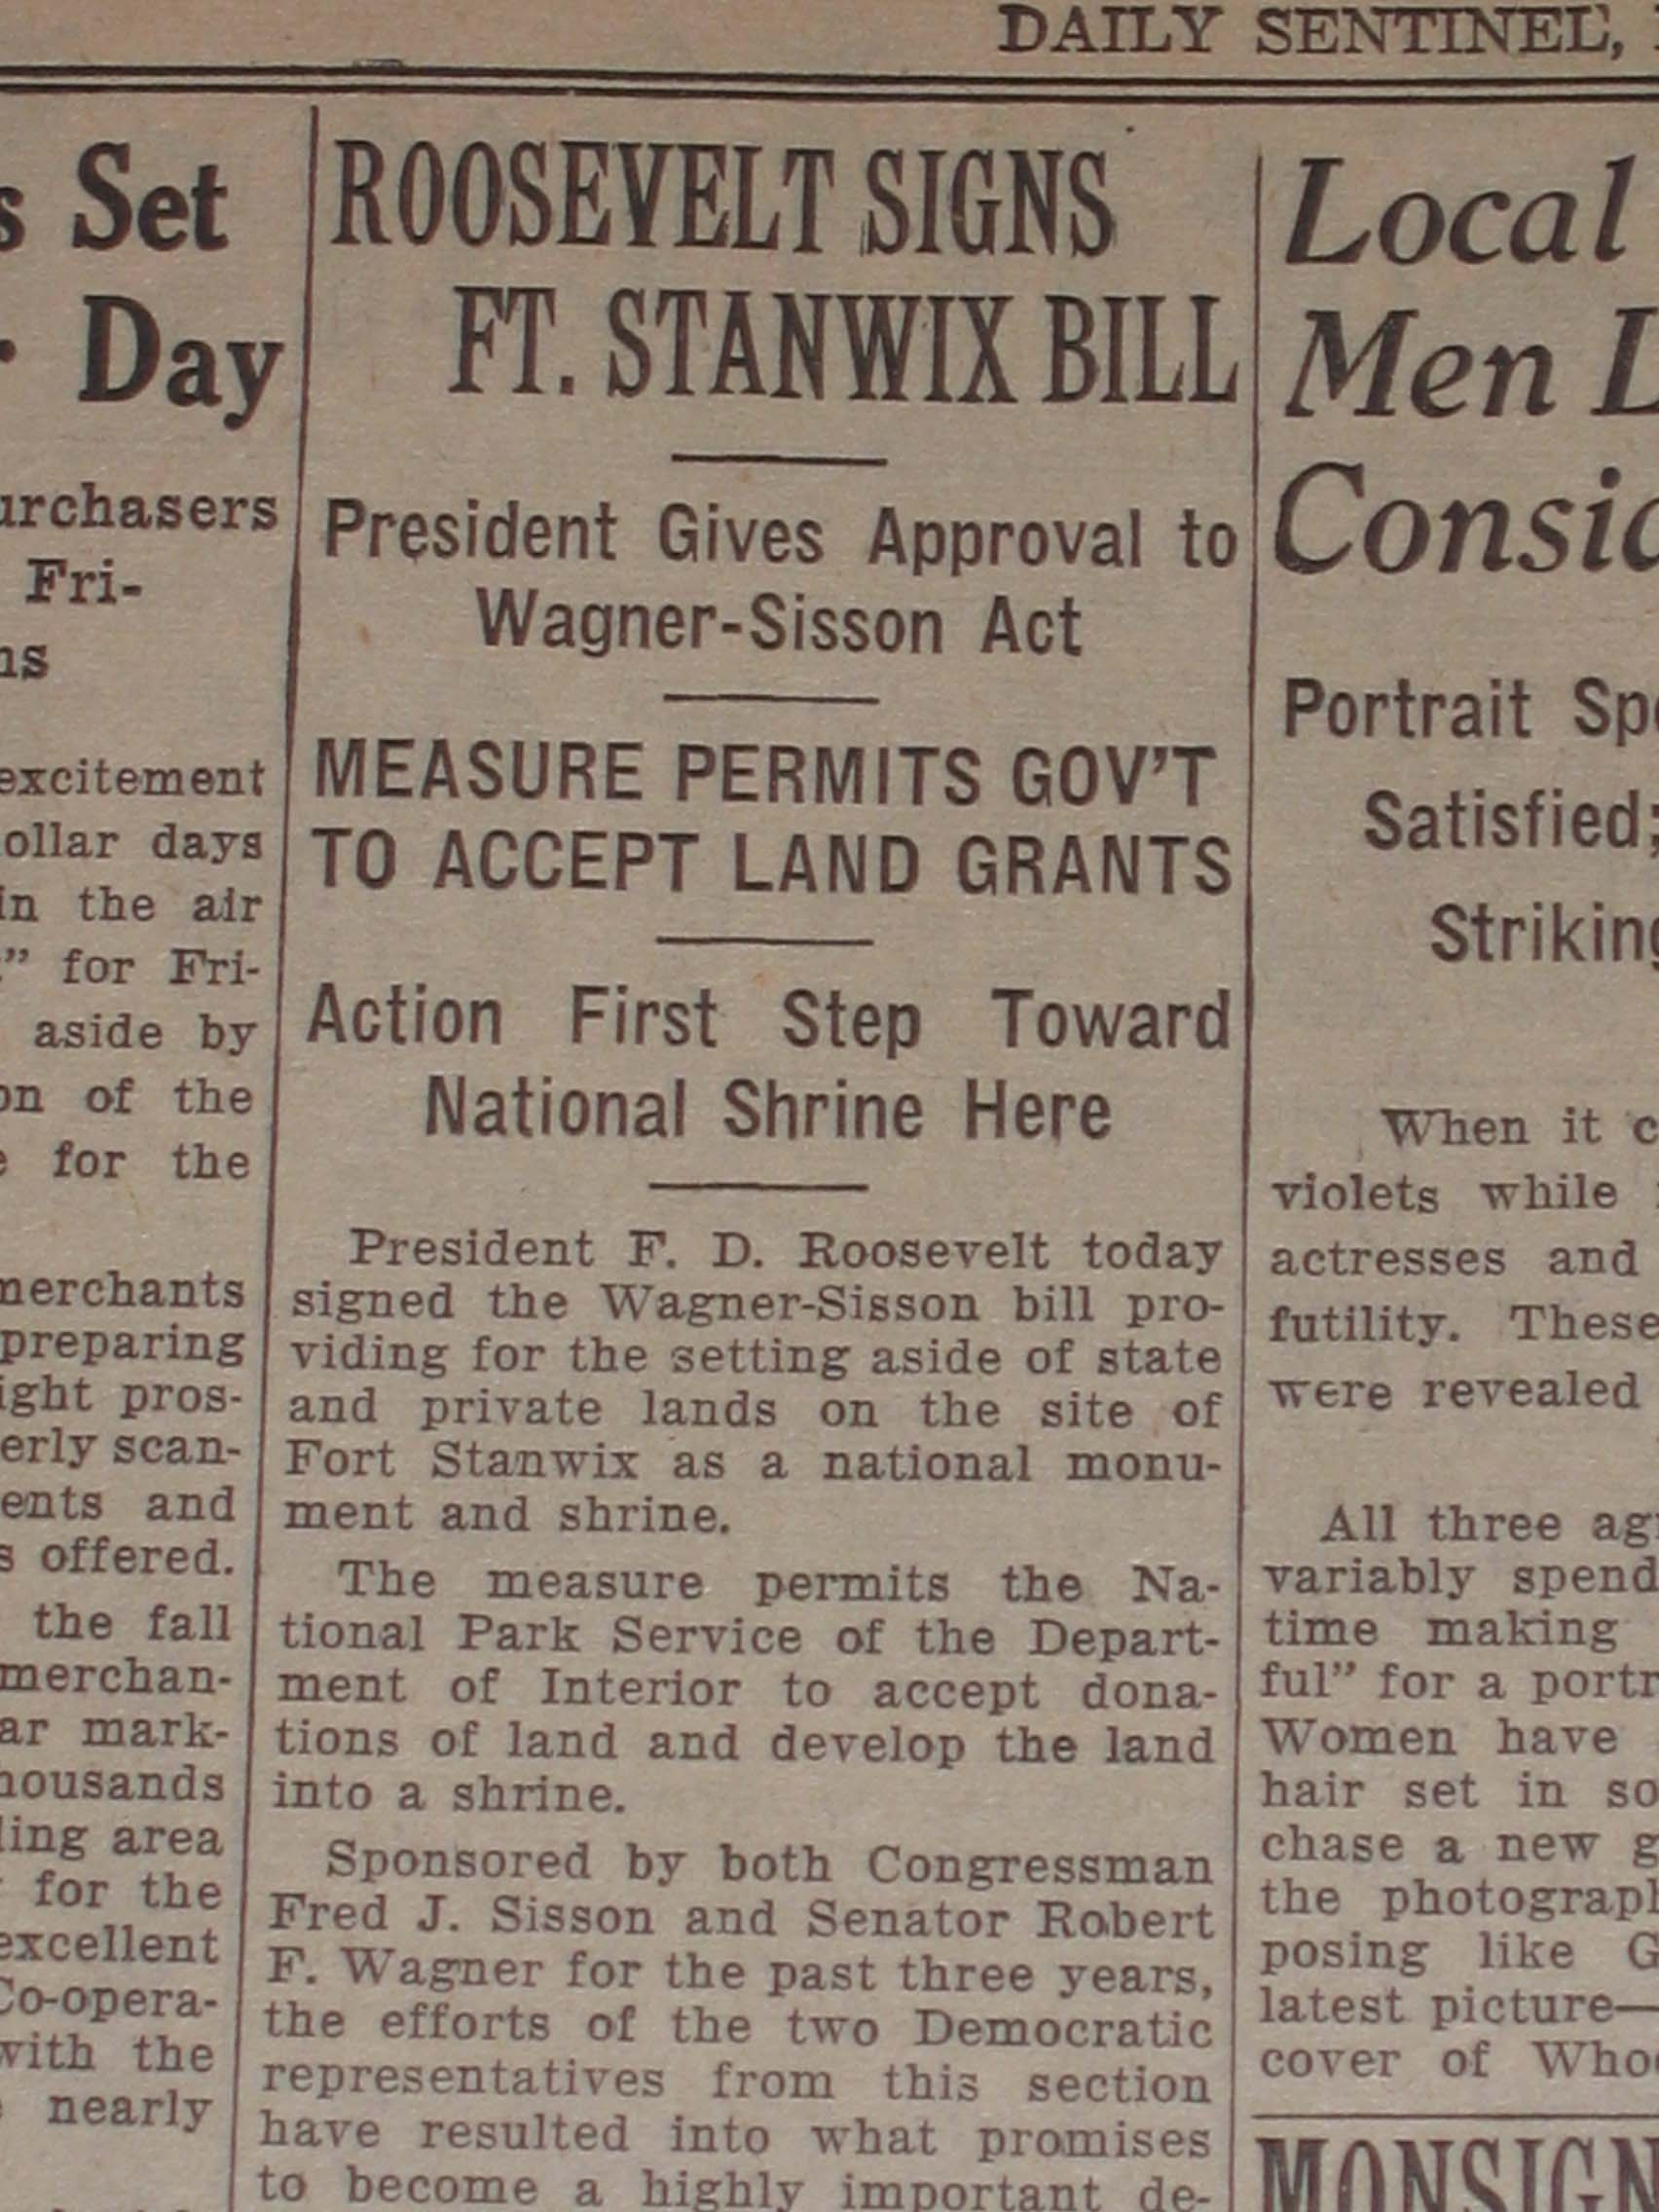 the 1935 Rome Sentinel in faded yellow, Headline: Roosevelt signs law to accept land grants, new National Park Shrine